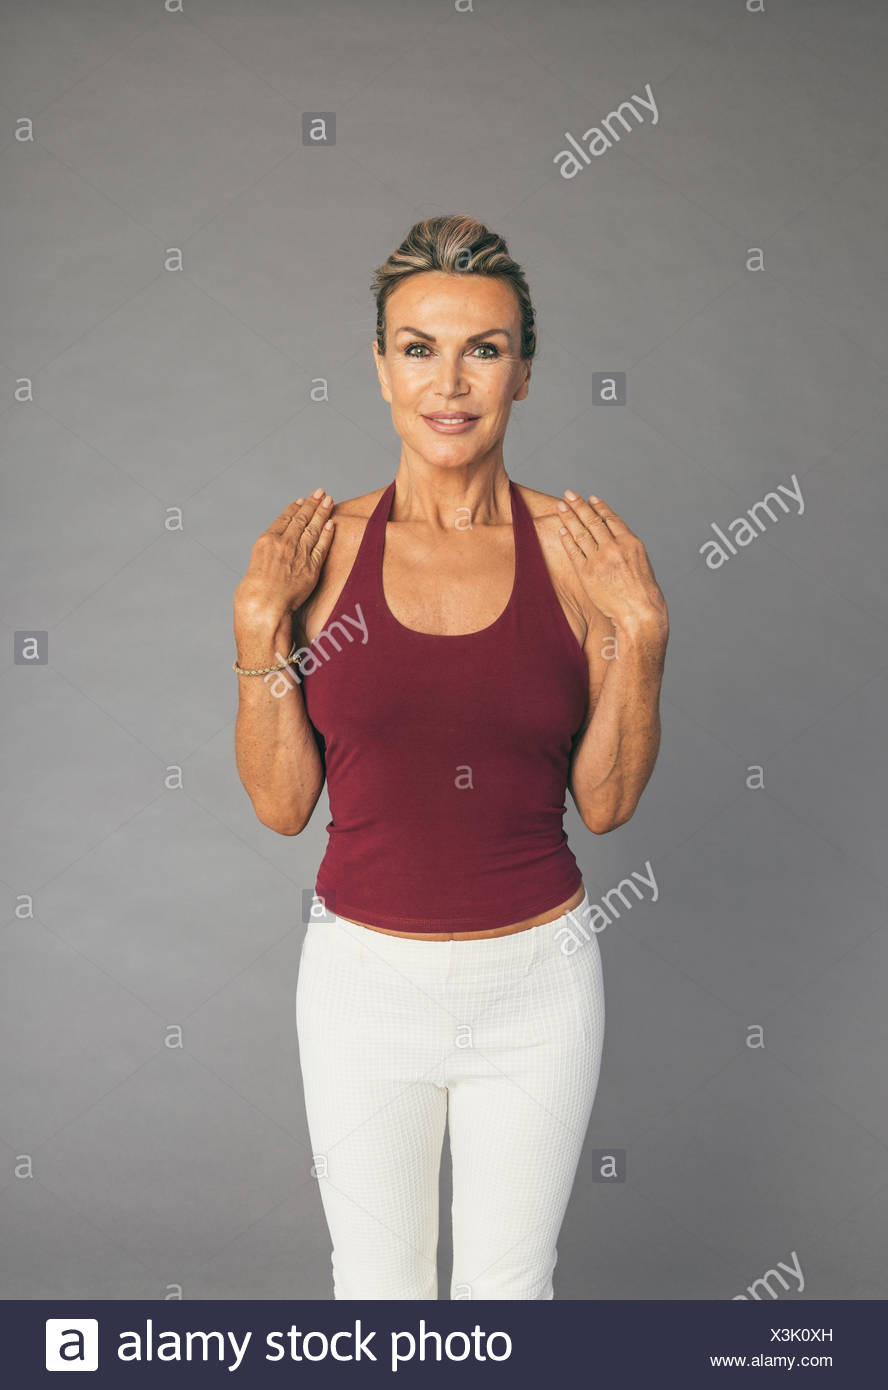 Mature woman flexibility exercise arms ellbow and hands - Stock Image